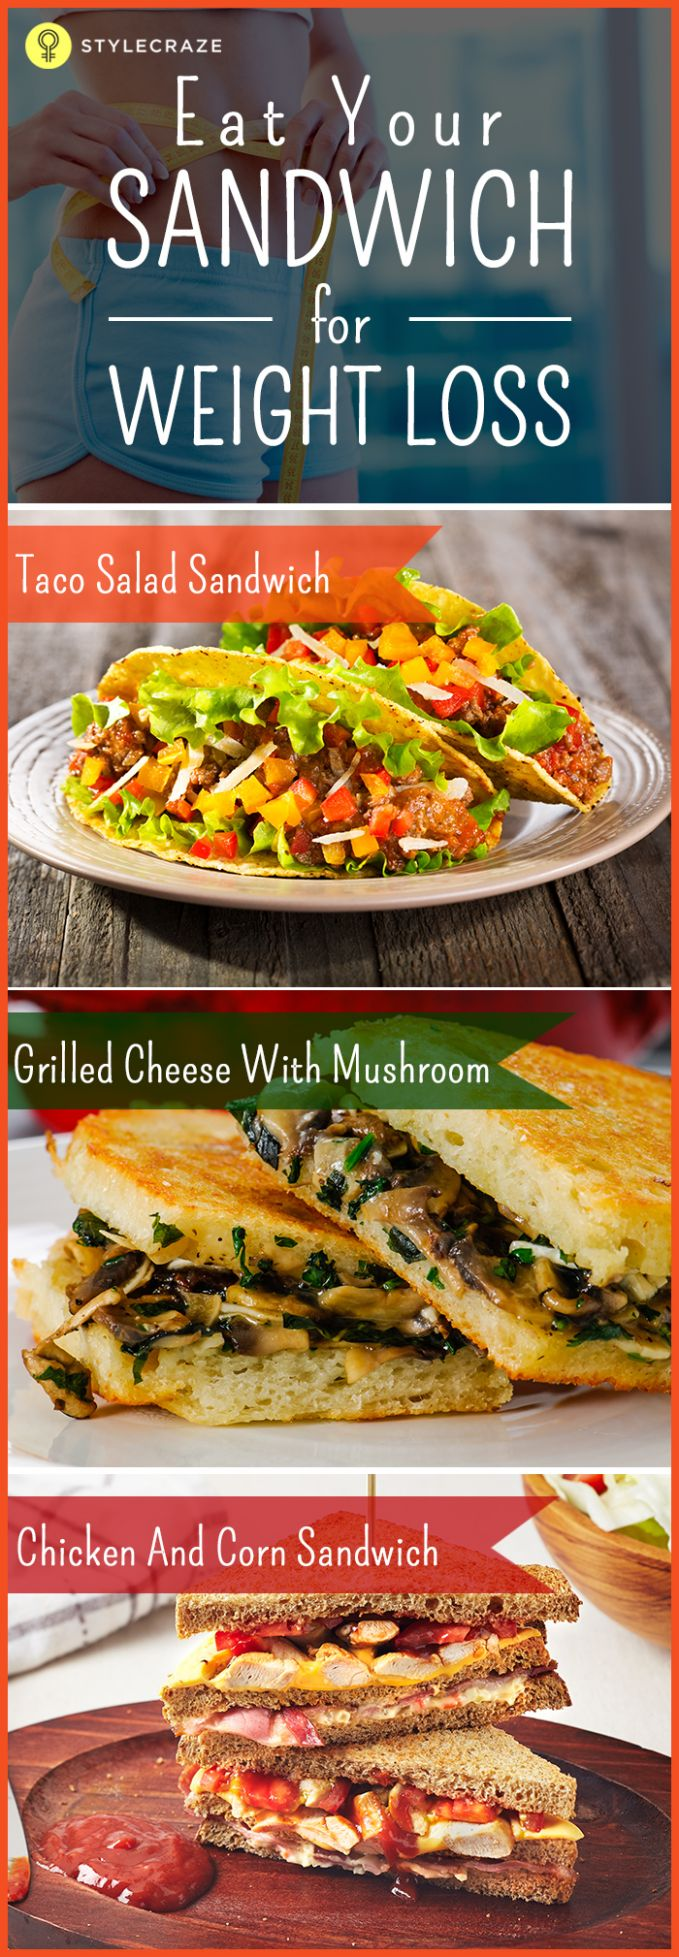 11 Healthy Sandwiches To Help You Lose Weight - Recipes For Weight Loss Philippines